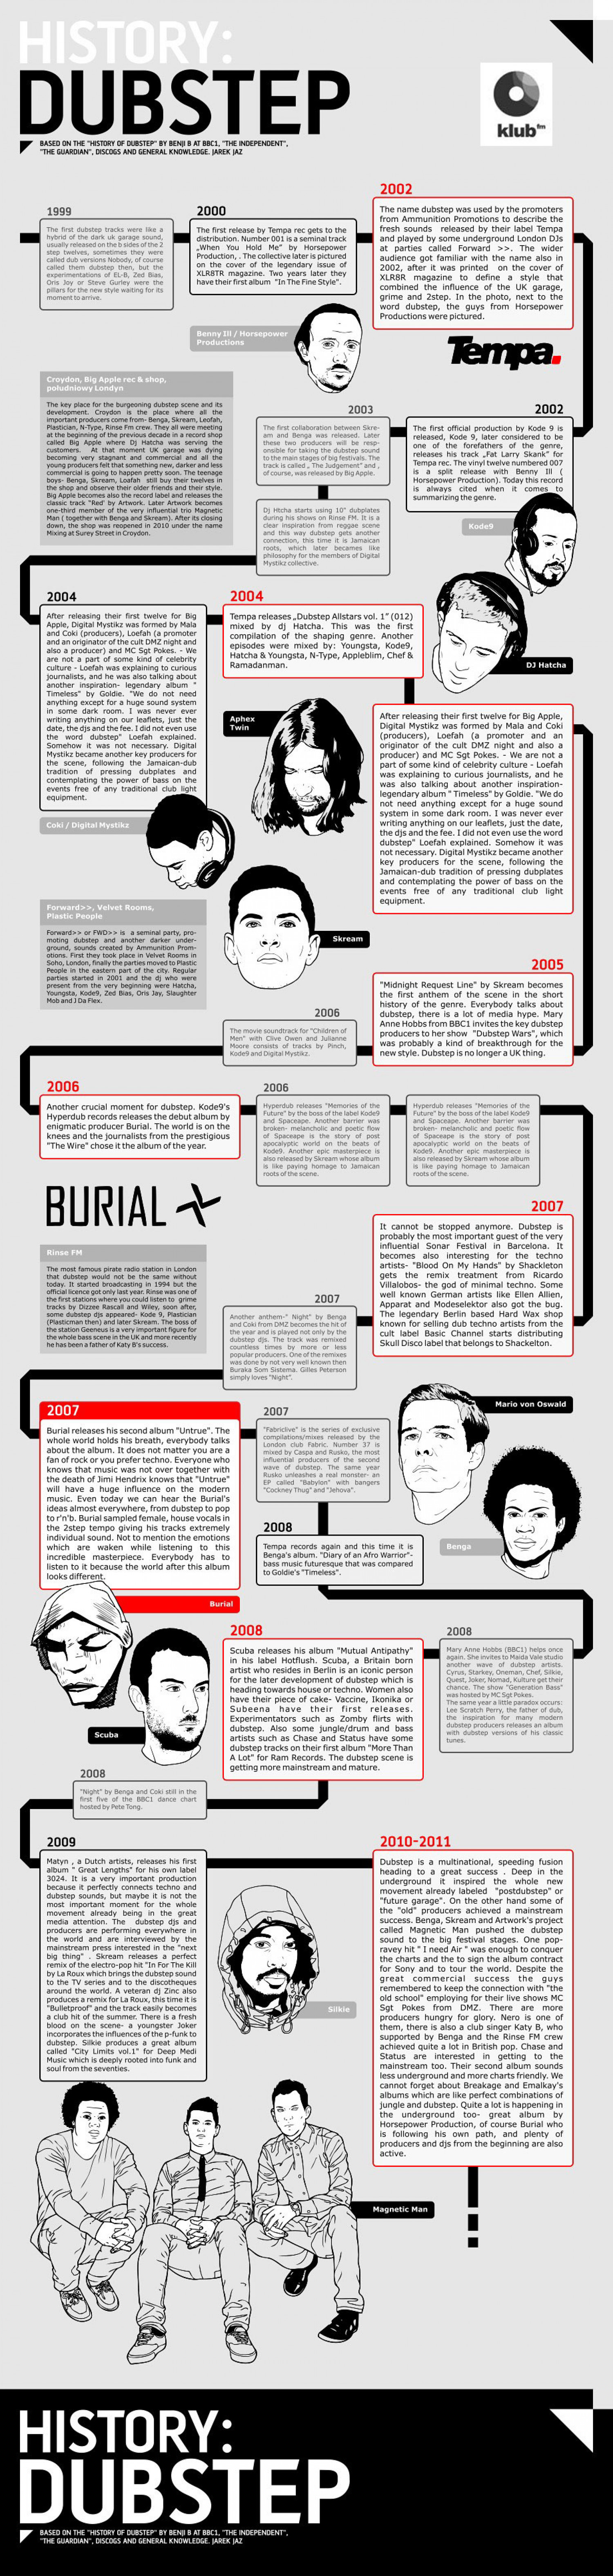 History of Dubstep (infographic in english) Infographic